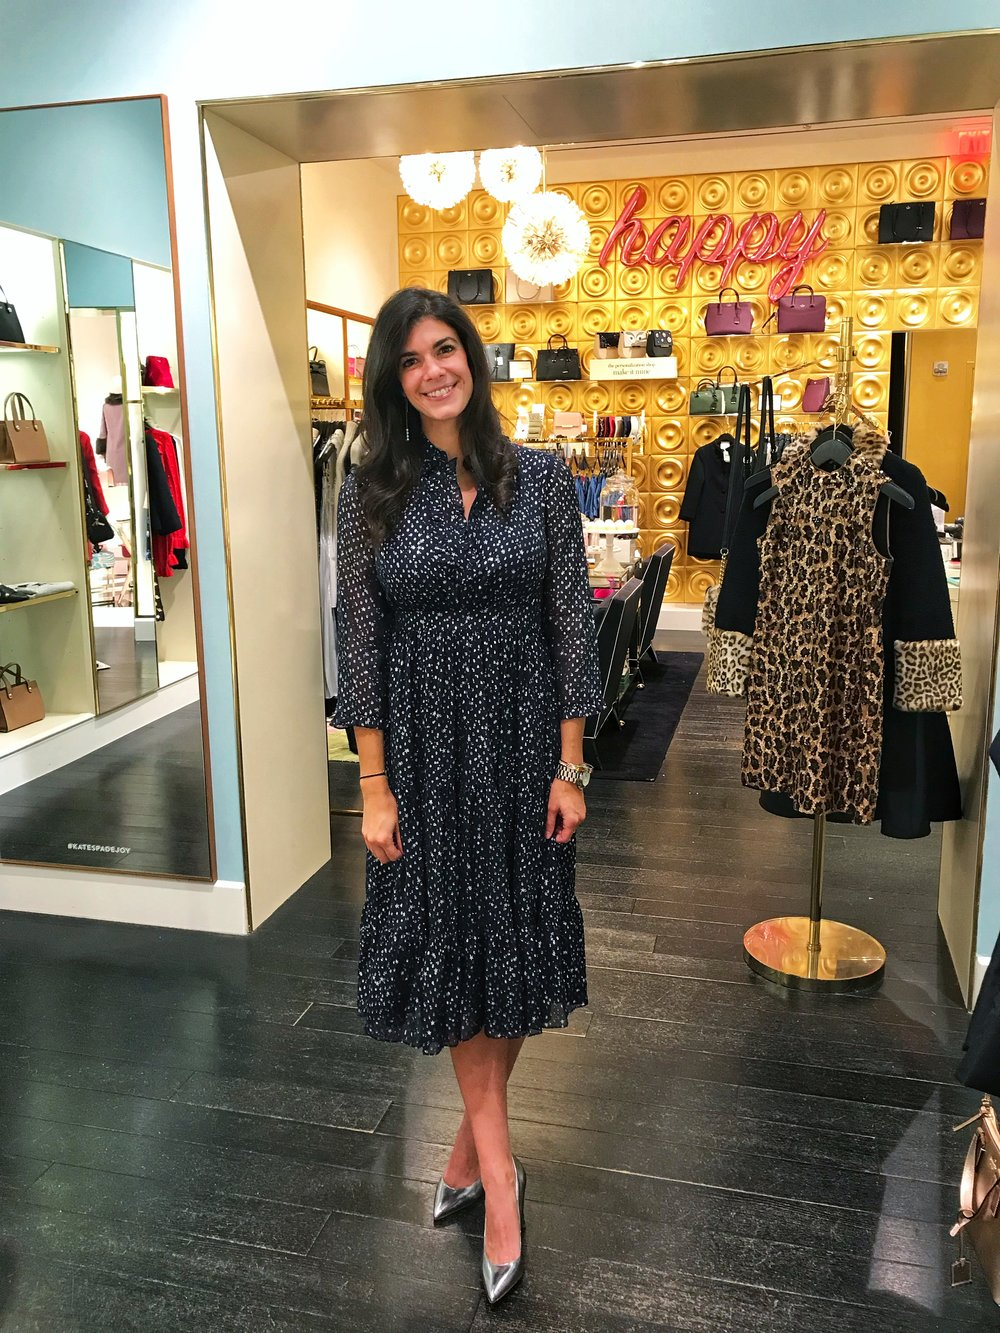 kate-spade-night-sky-dot-dress-lauren-schwaiger-style-blogger.jpg